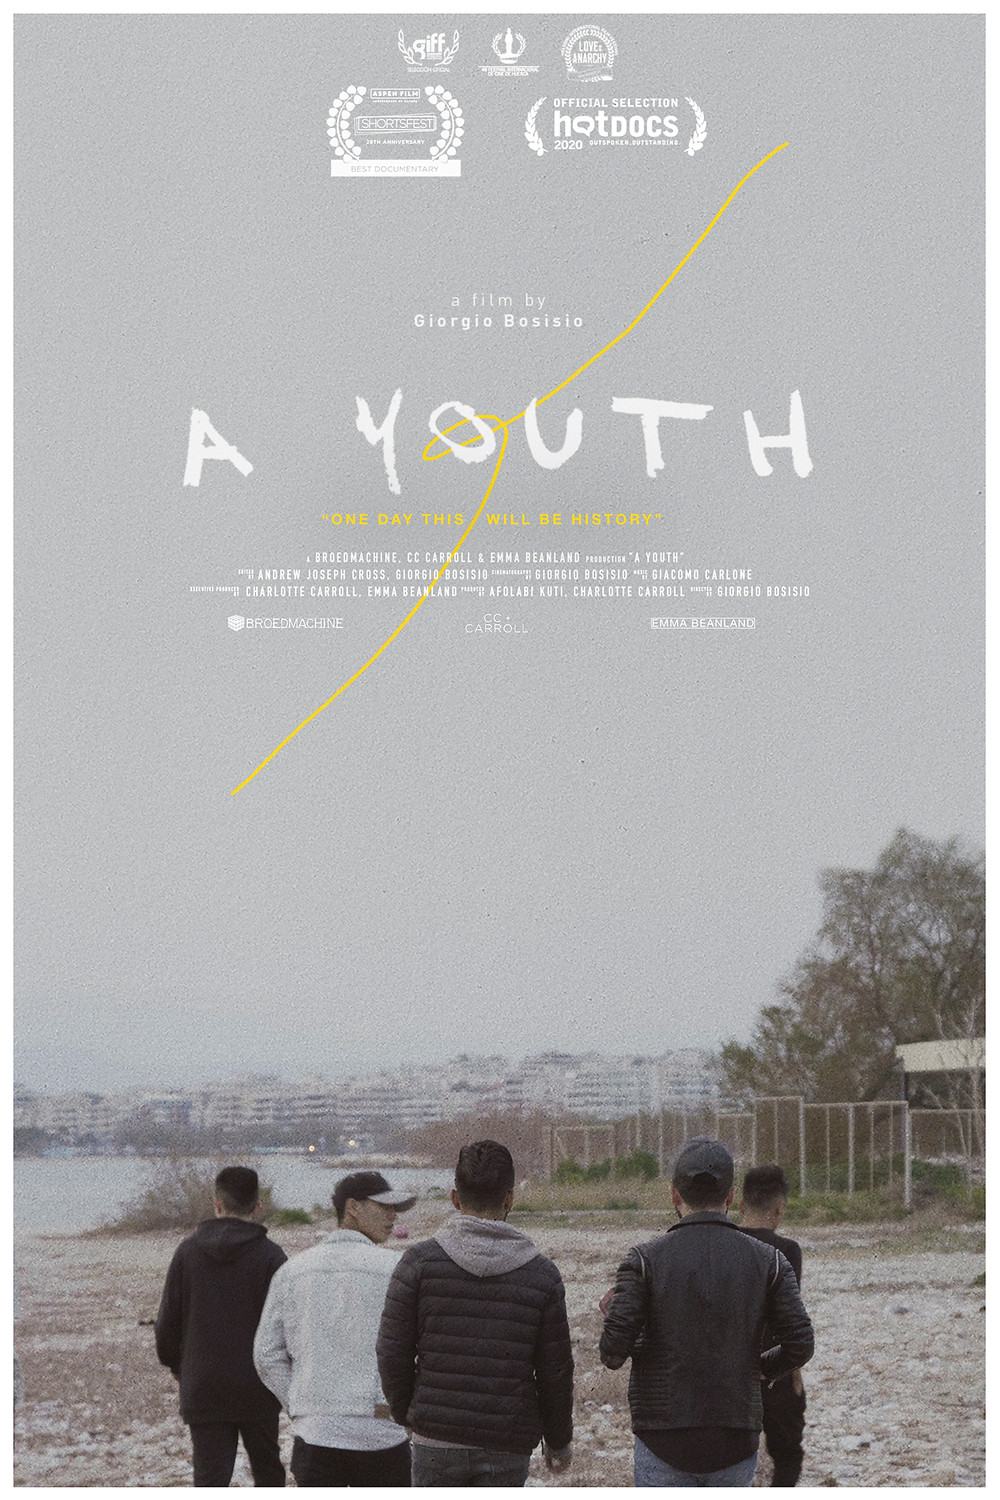 Poster for A Youth showing people on a beach.